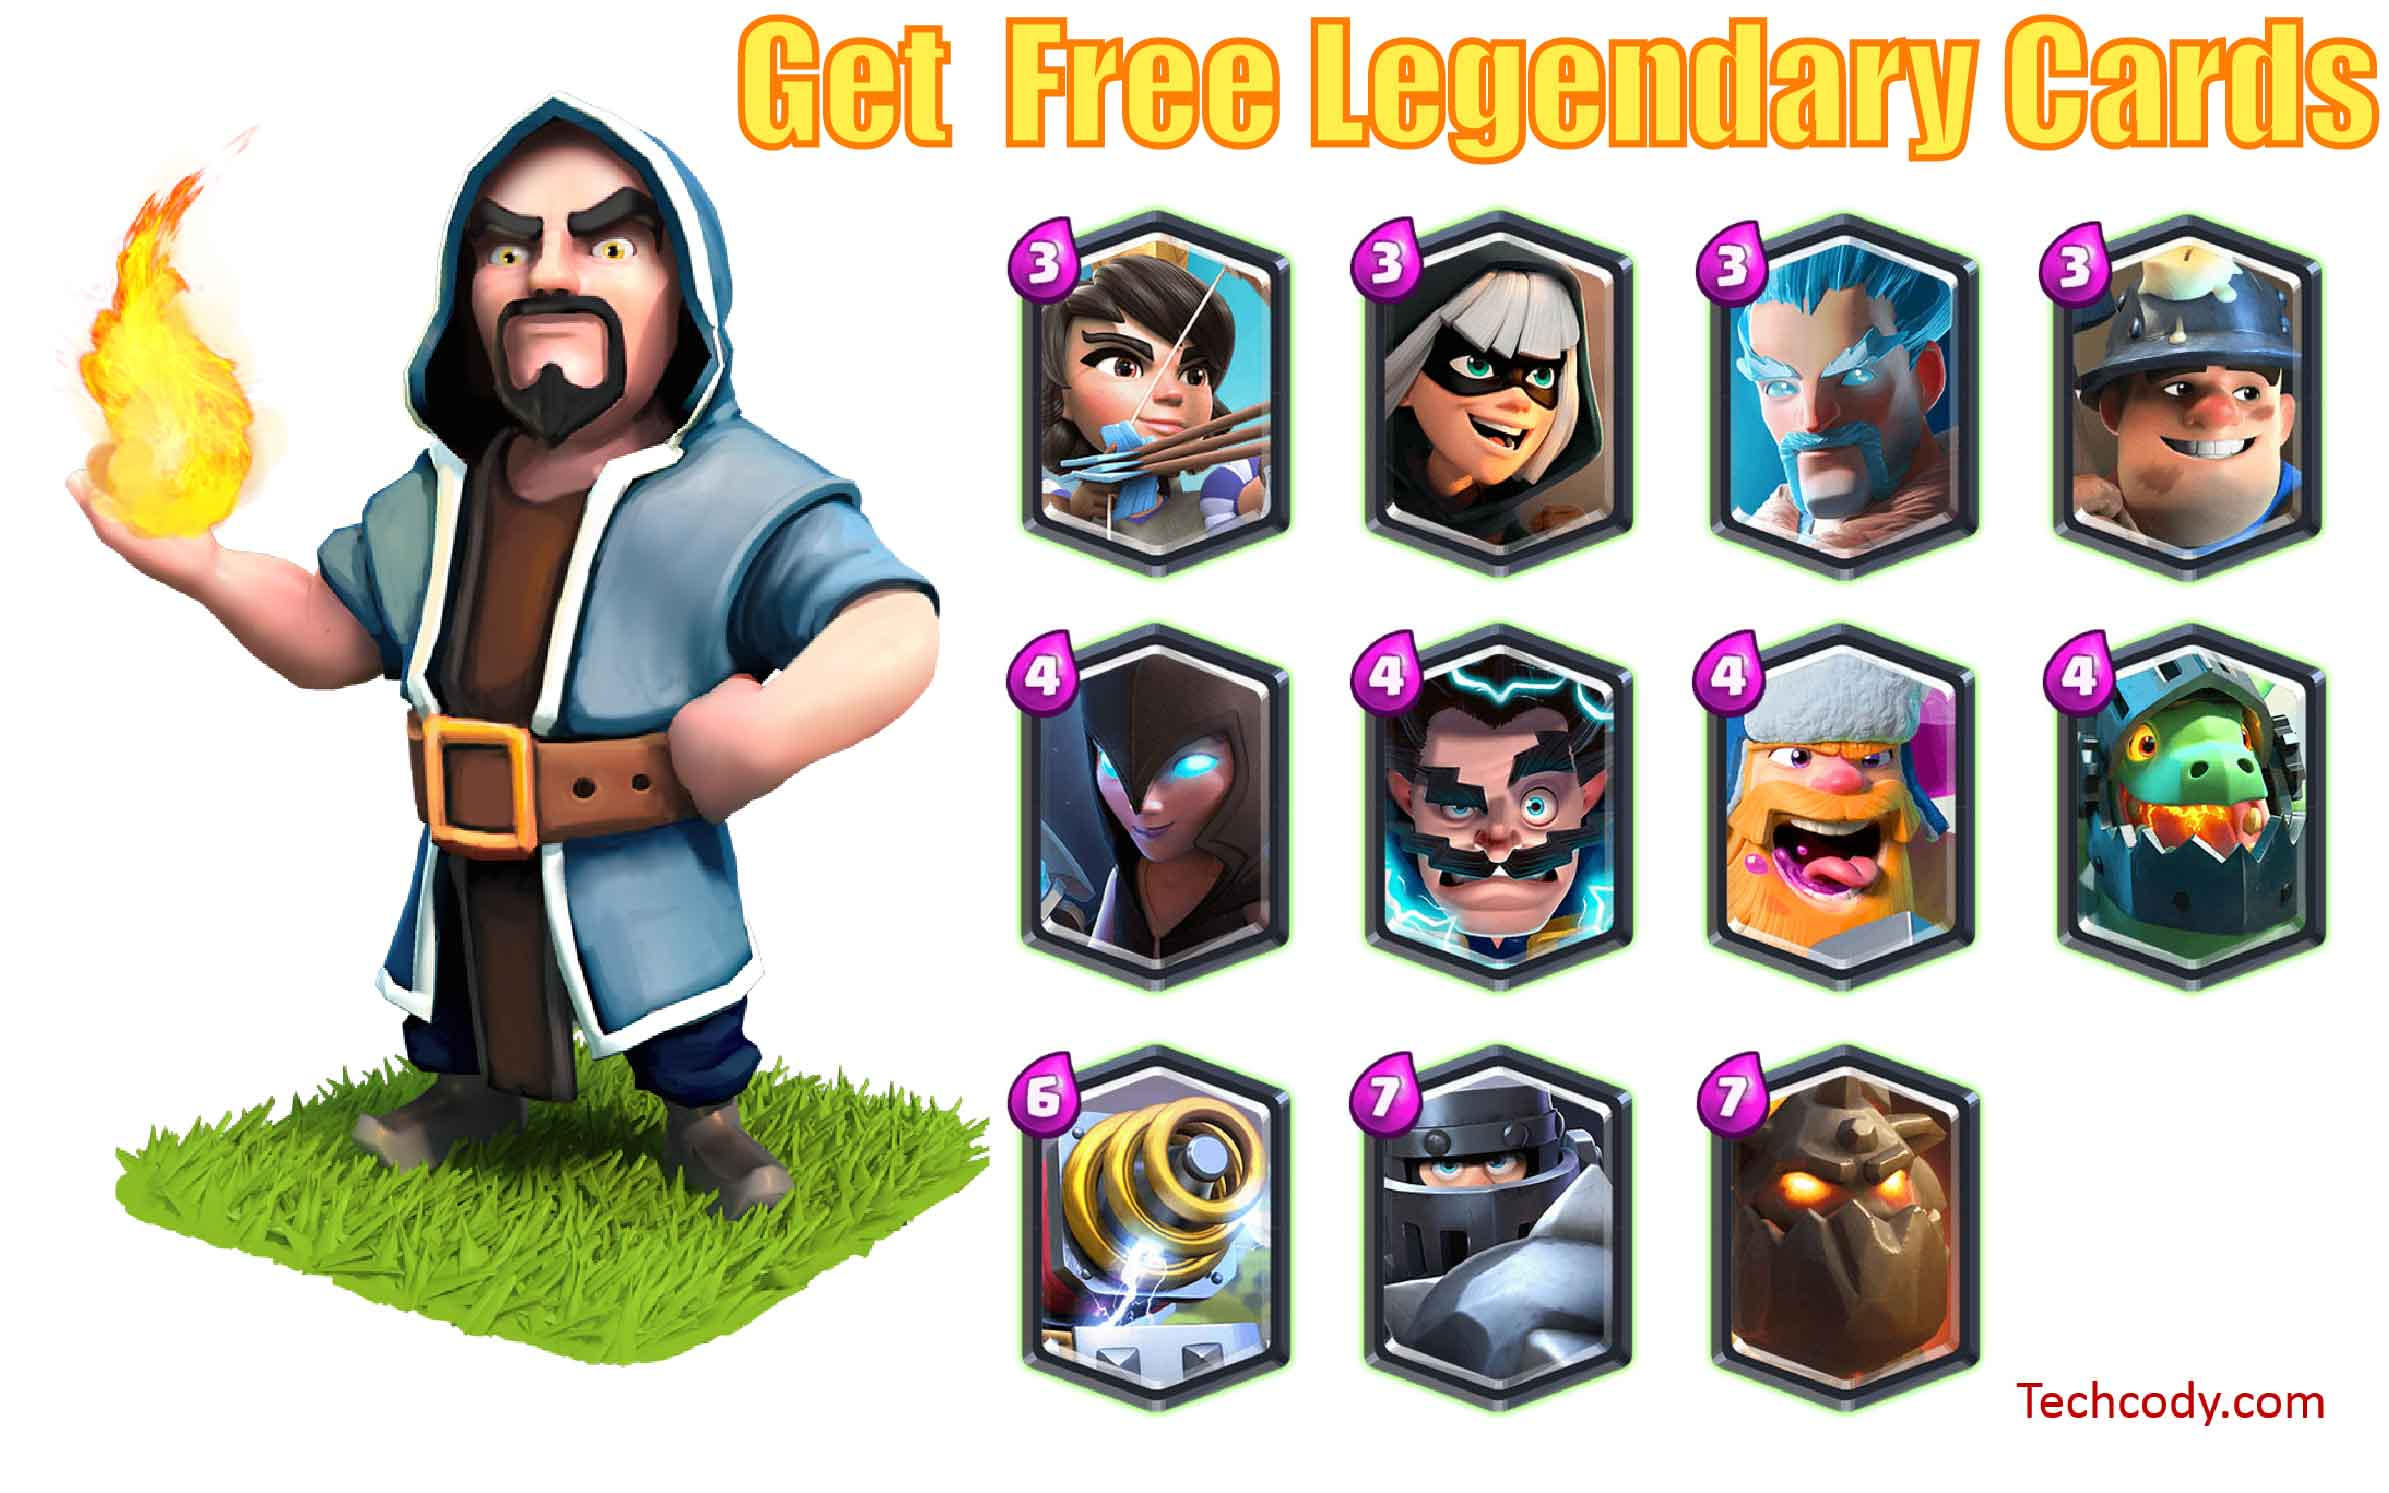 How To Get More Free Legendary Cards In Clash Royale